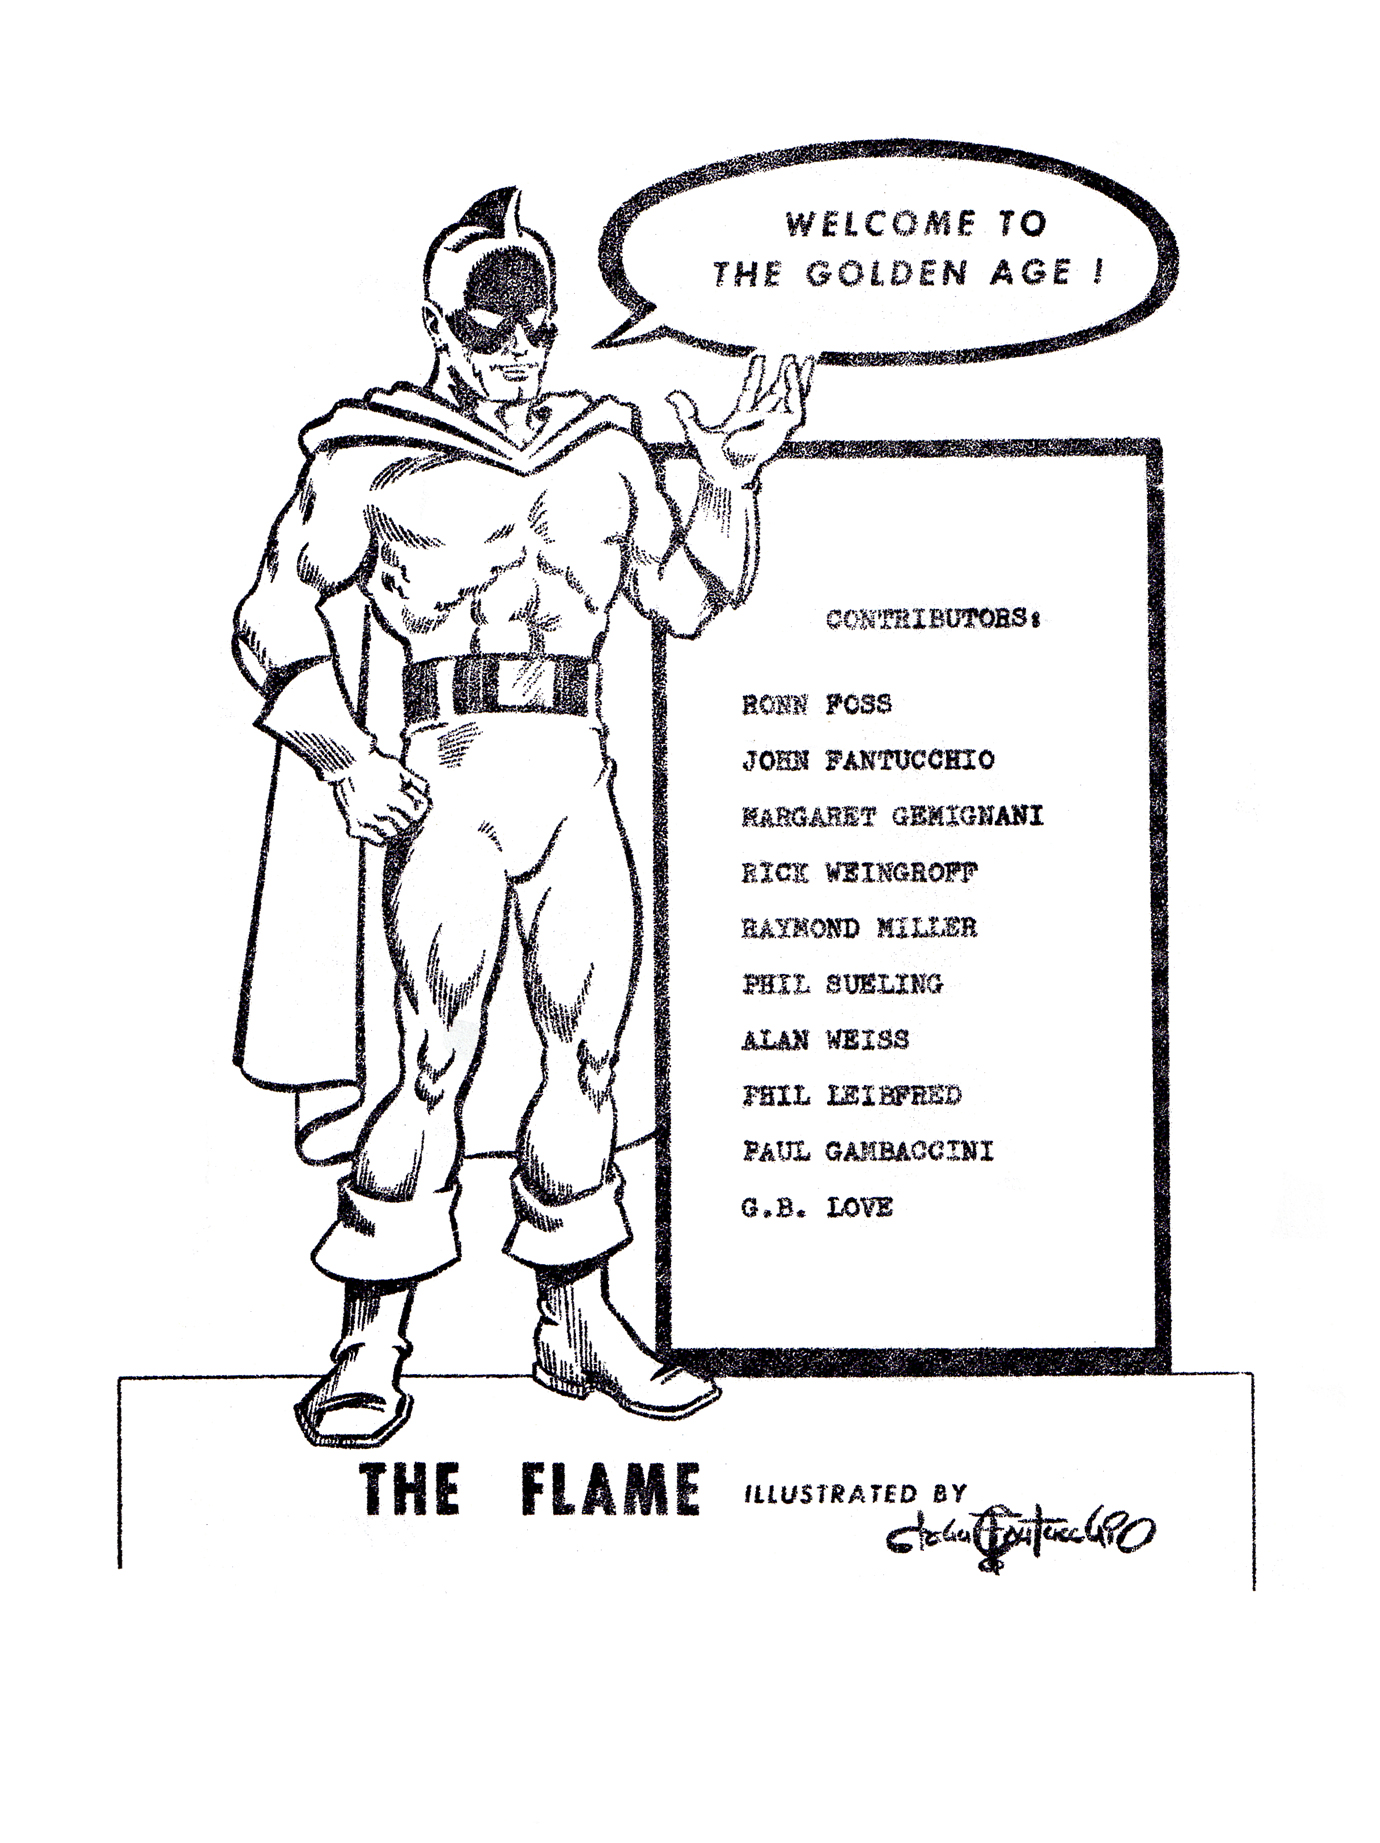 The Golden Age #1 Contents Page by John G Fantucchio